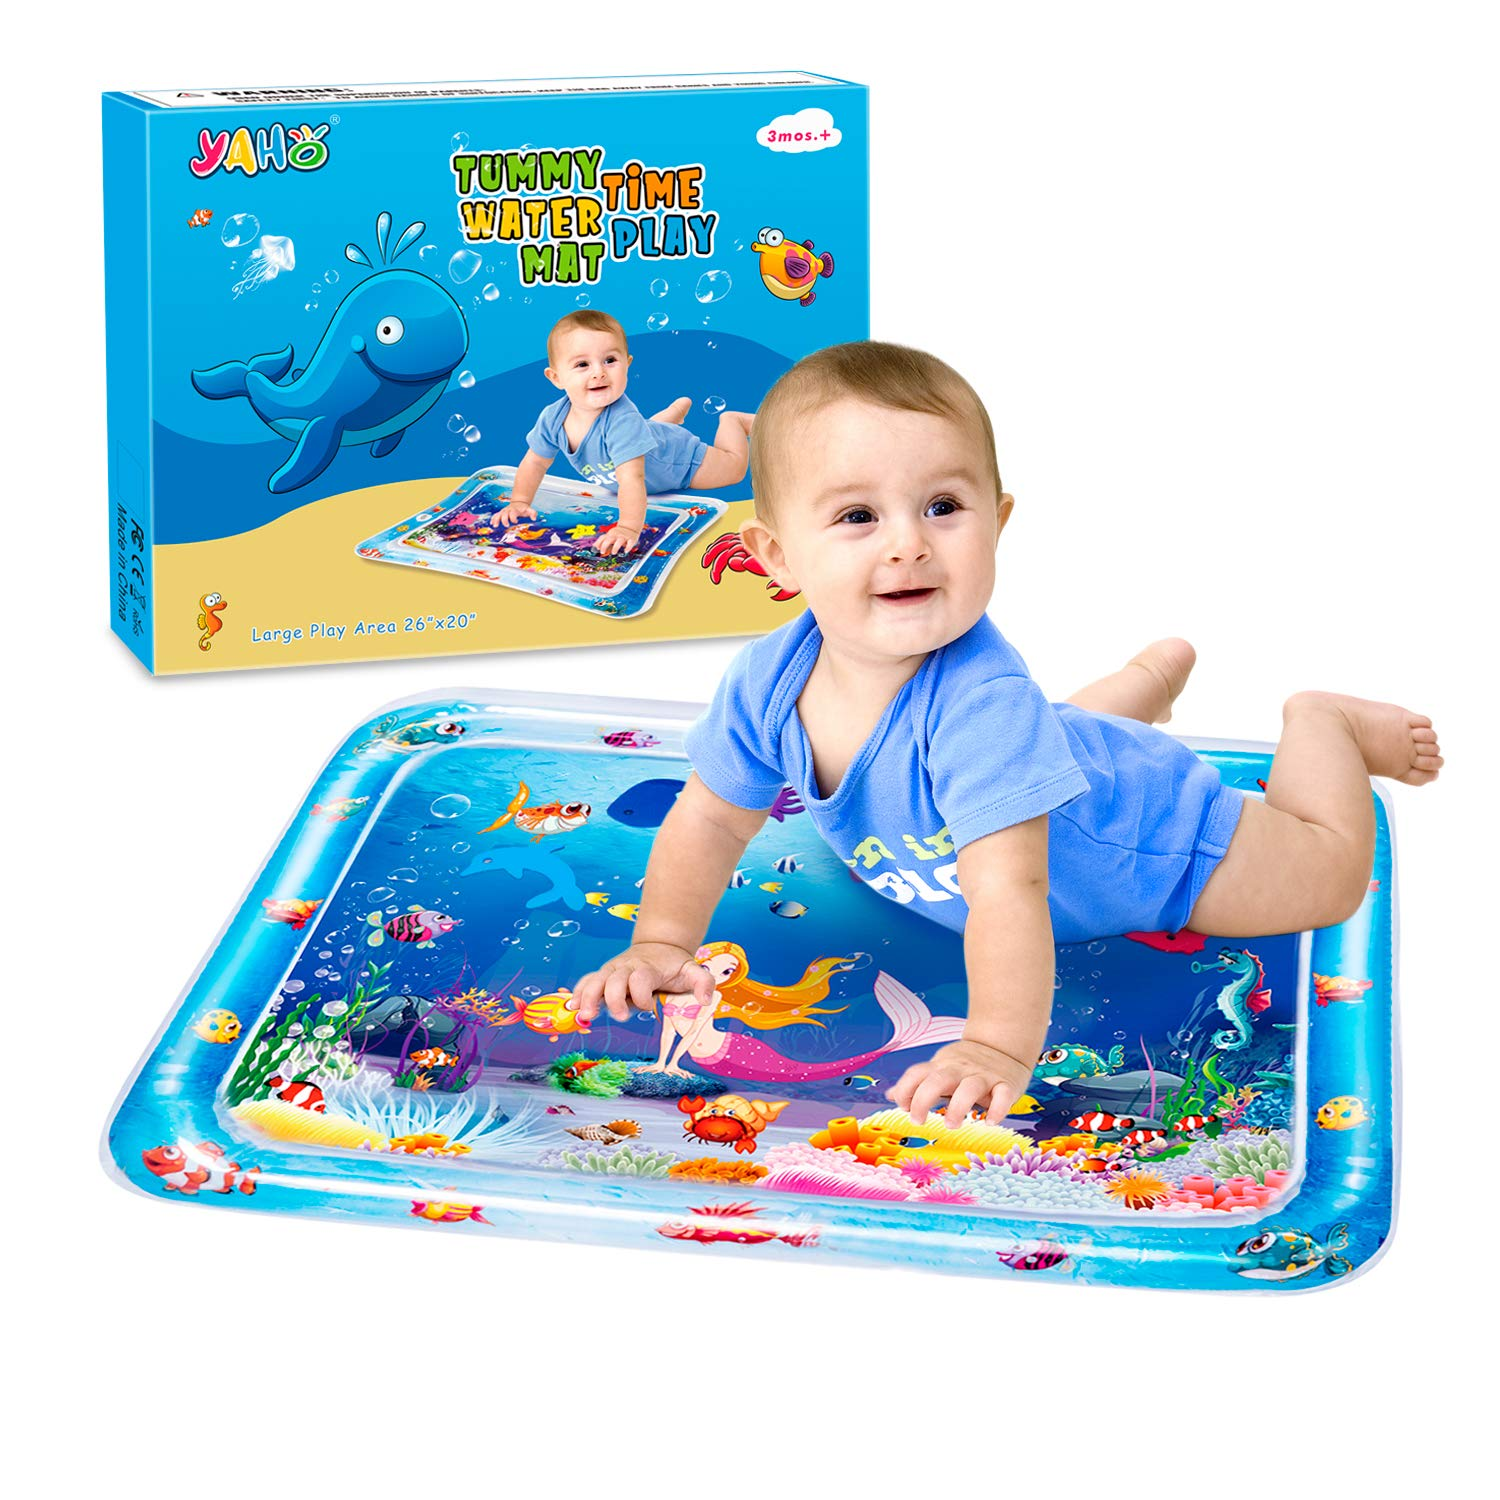 Early Development Activity Center Your Babys Stimulation Growth 2019 New 26 inch Large Inflatable Tummy Time Water Play Mat Infants /& Toddlers is The Perfect Fun Time YAHO